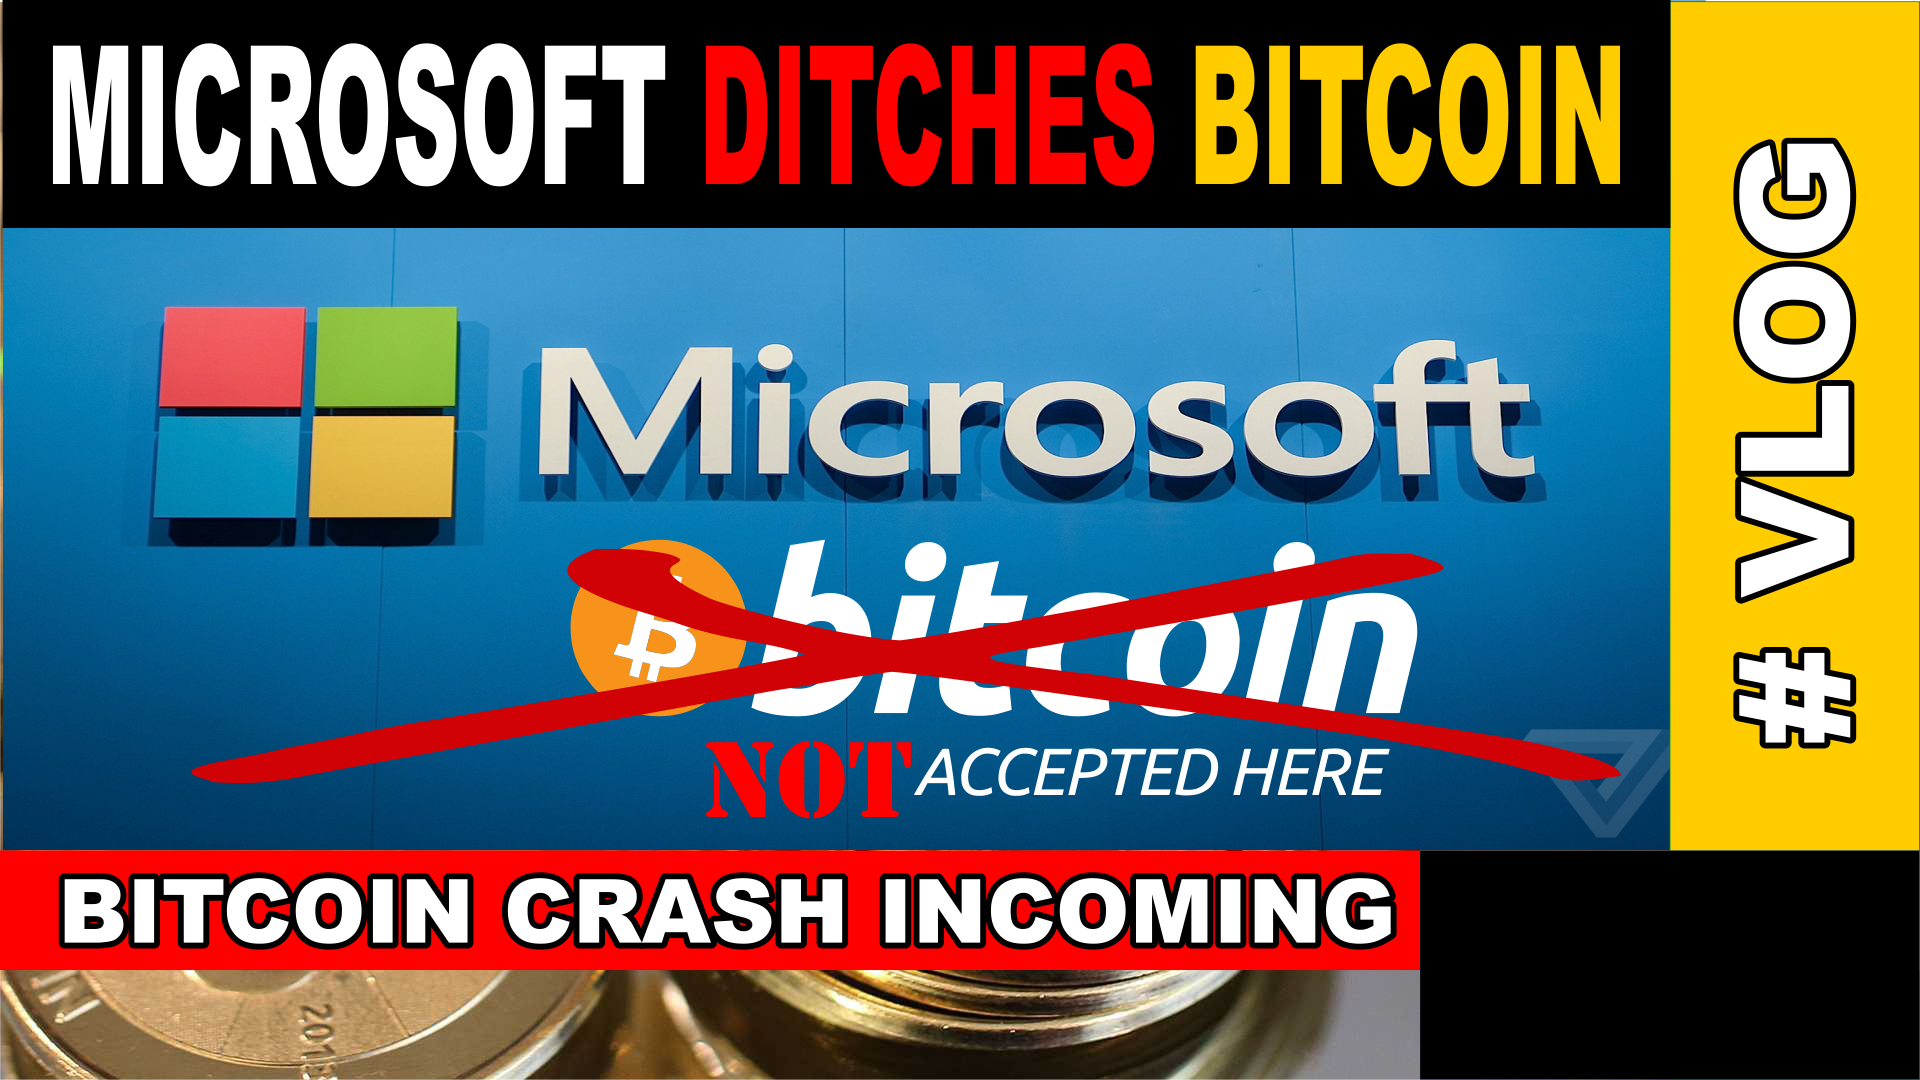 BREAKING NEWS! MICROSOFT DUMPS #BITCOIN